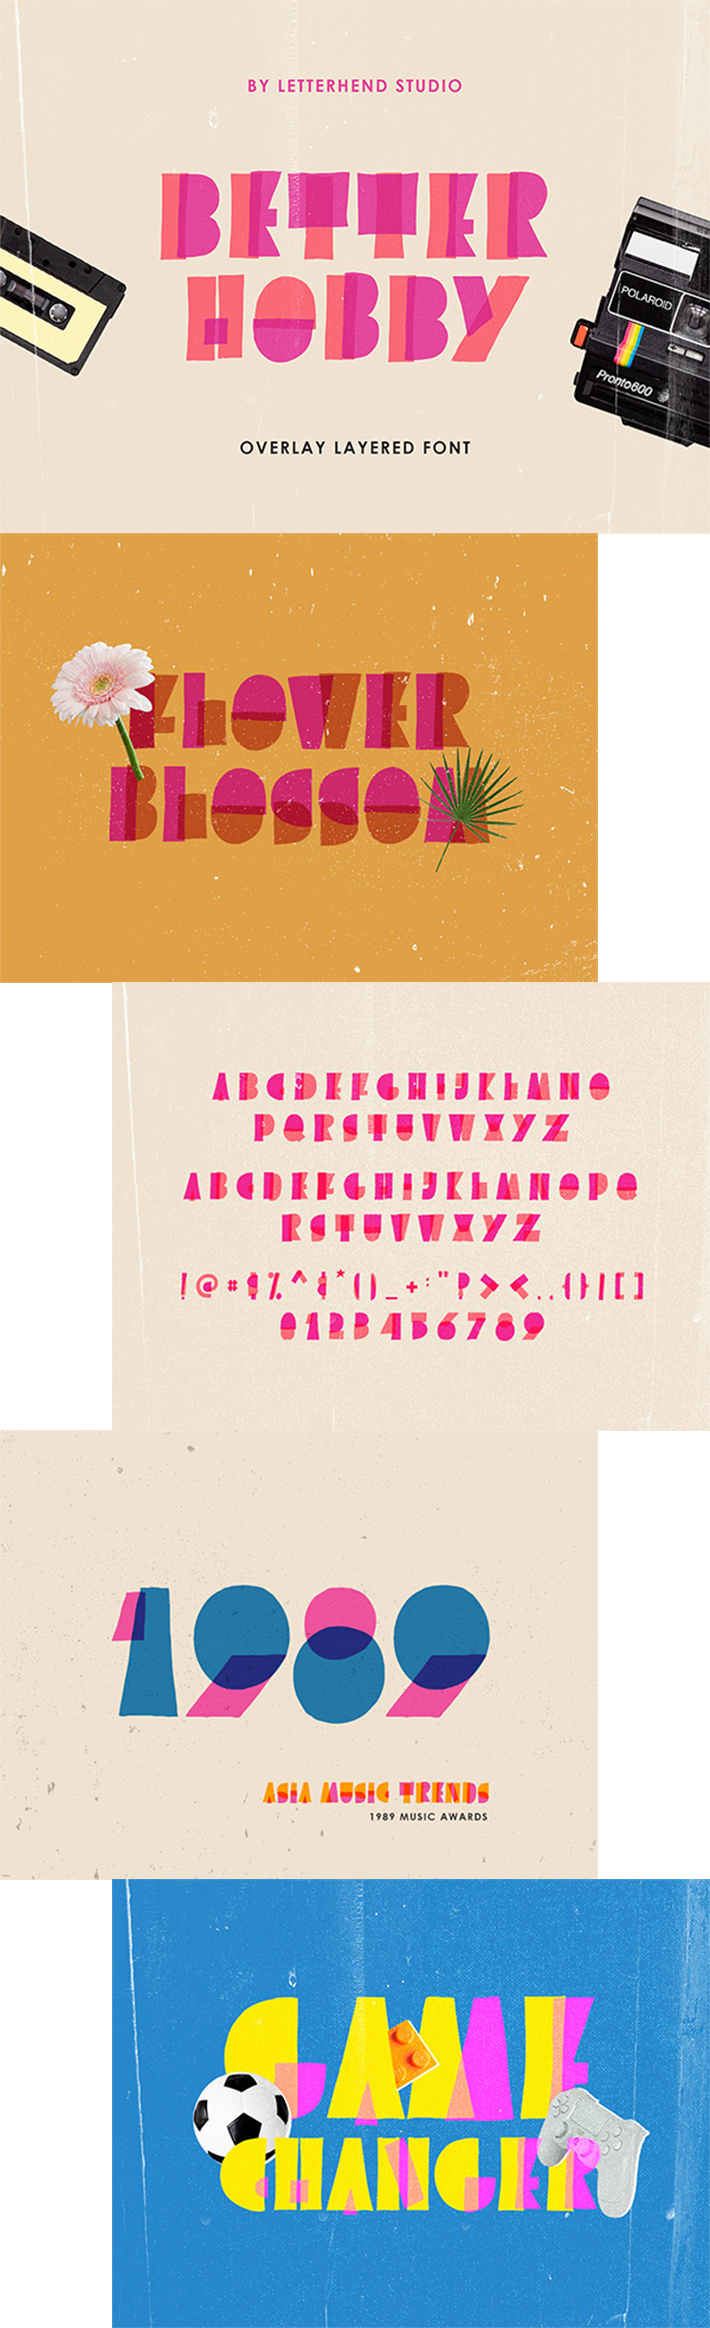 Awesome Stylish Bette Hobby Display Font